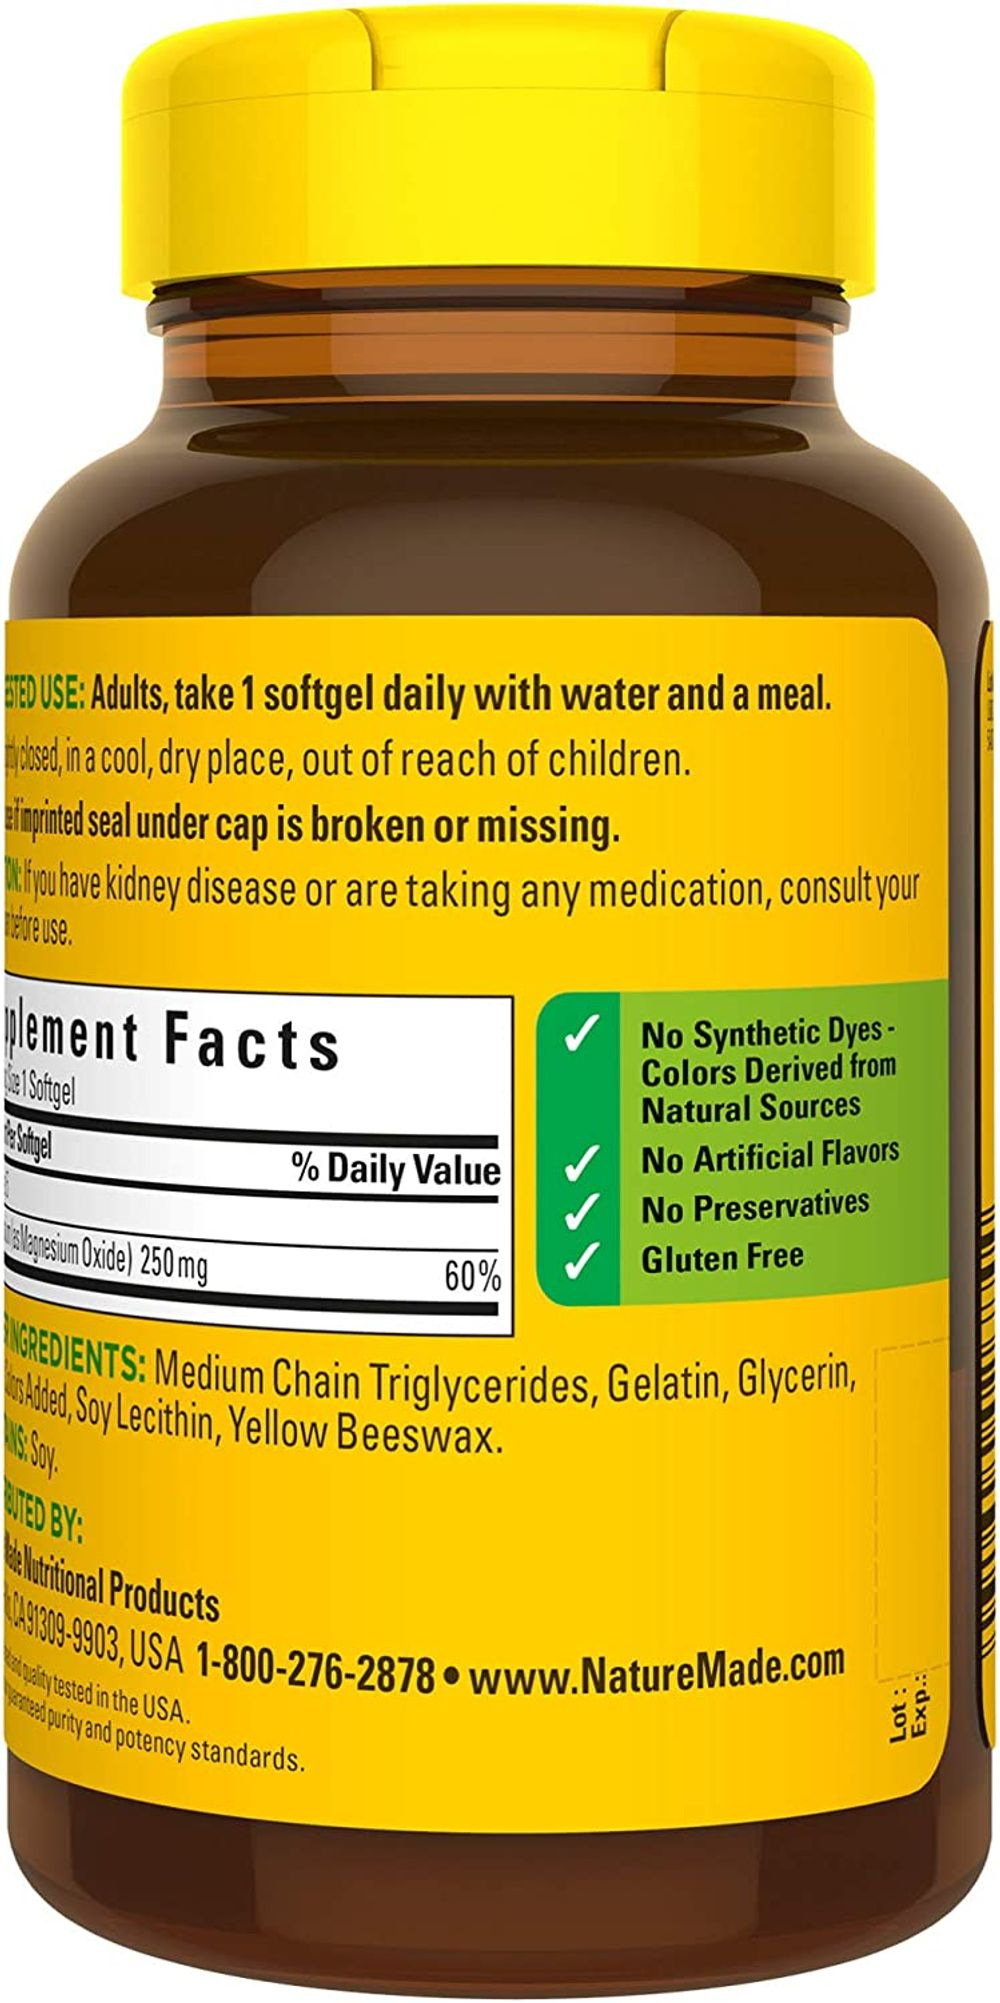 Nature Made Magnesium Oxide 250 mg Softgels, 90 Count for Nutritional Support† (Packaging May Vary)